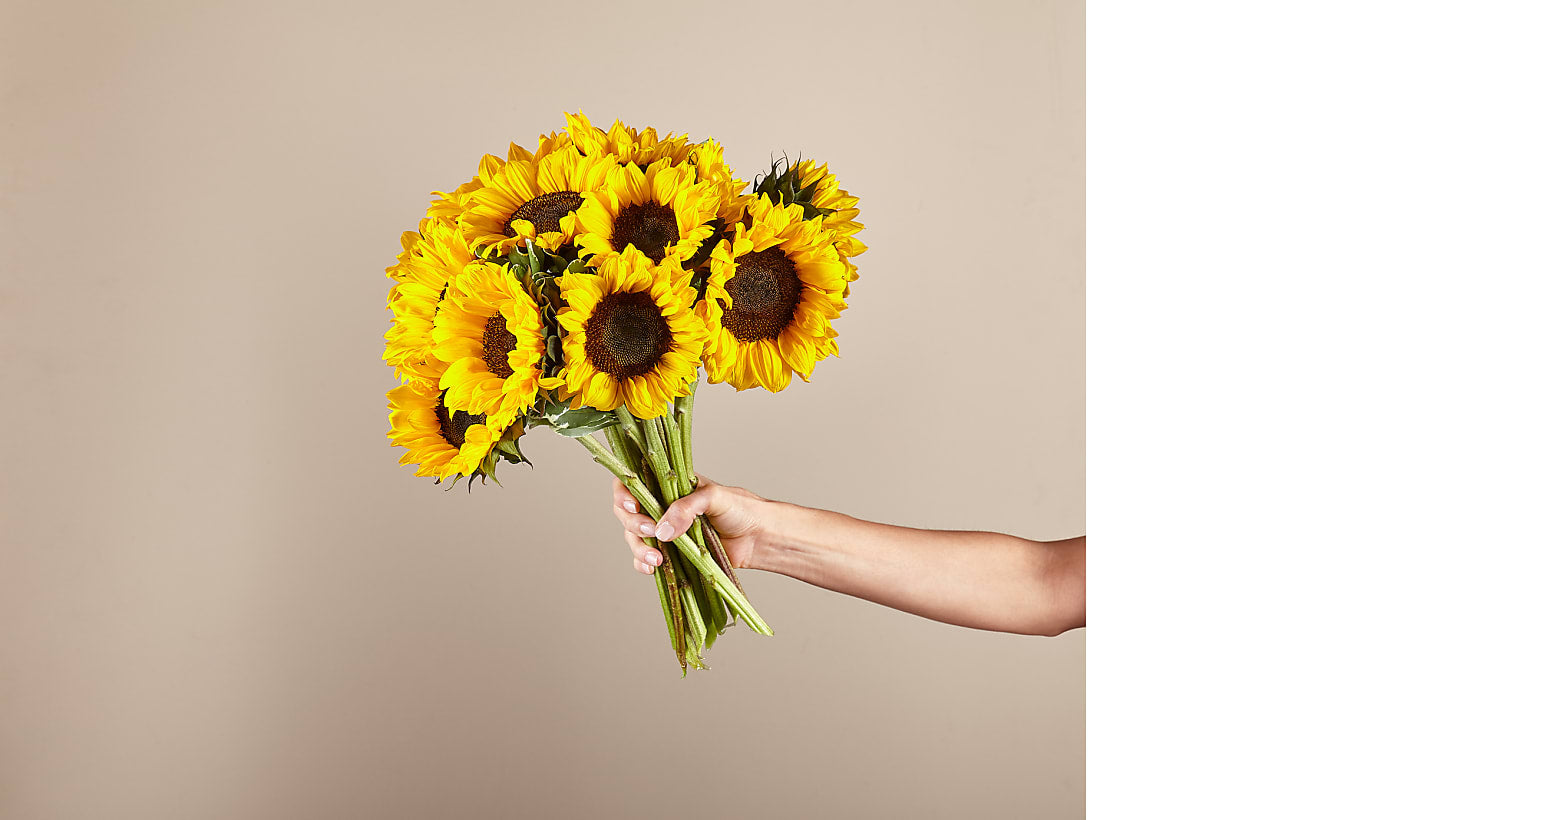 Honey Bee Sunflower Bouquet - Image 2 Of 4